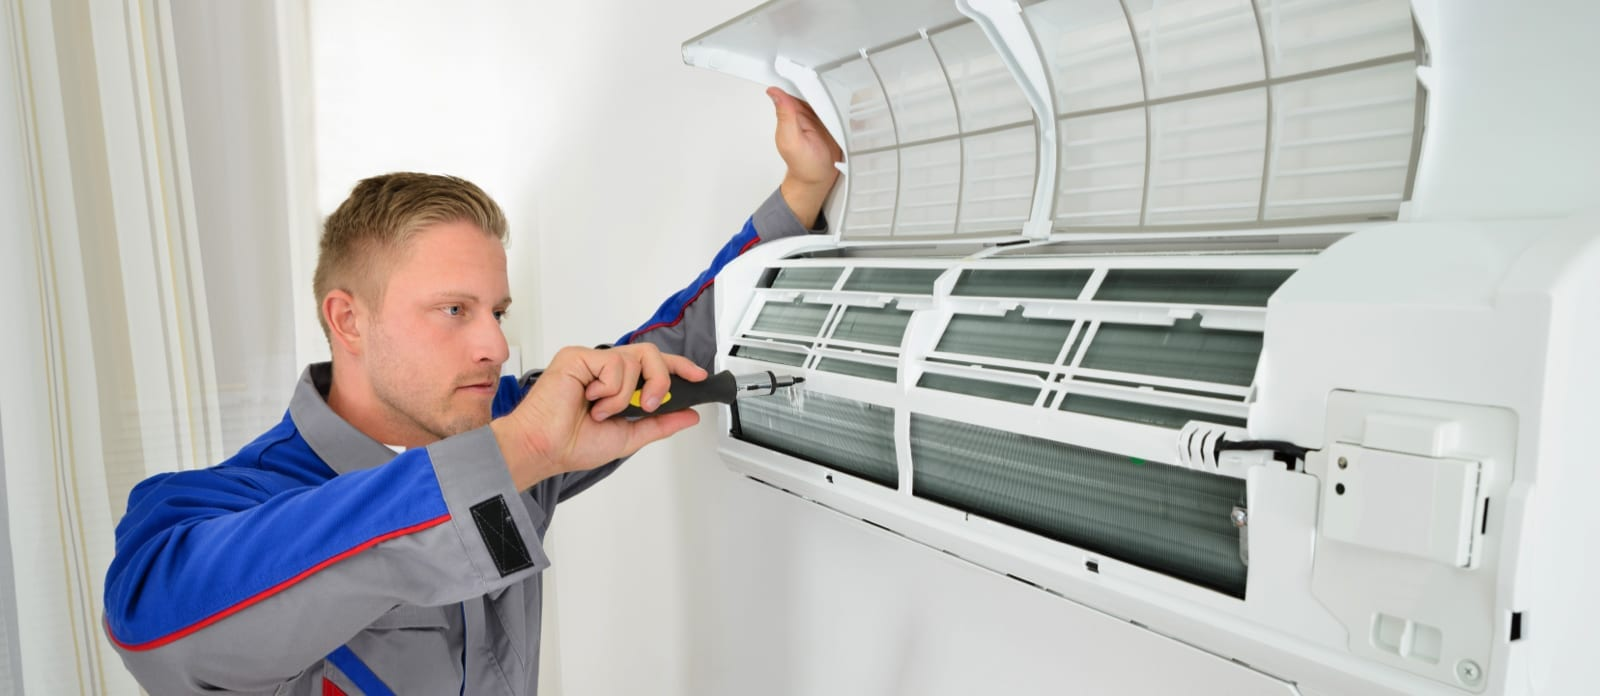 Man working on air conditioning repair and maintenance